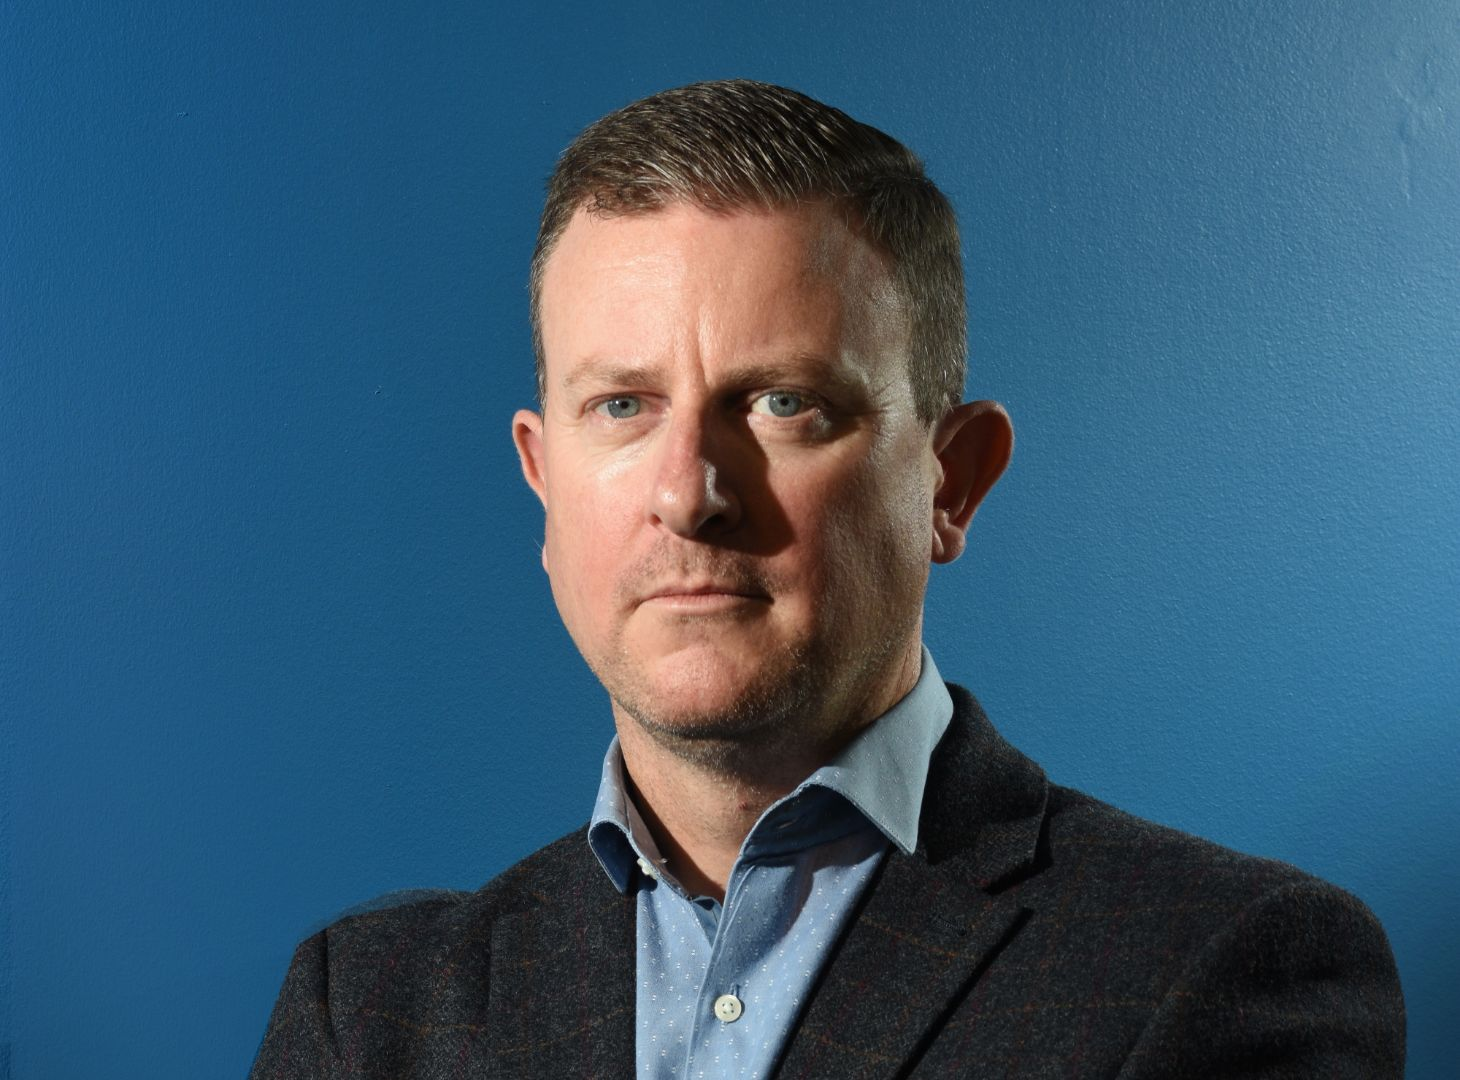 James Hopper of Security Risk Management